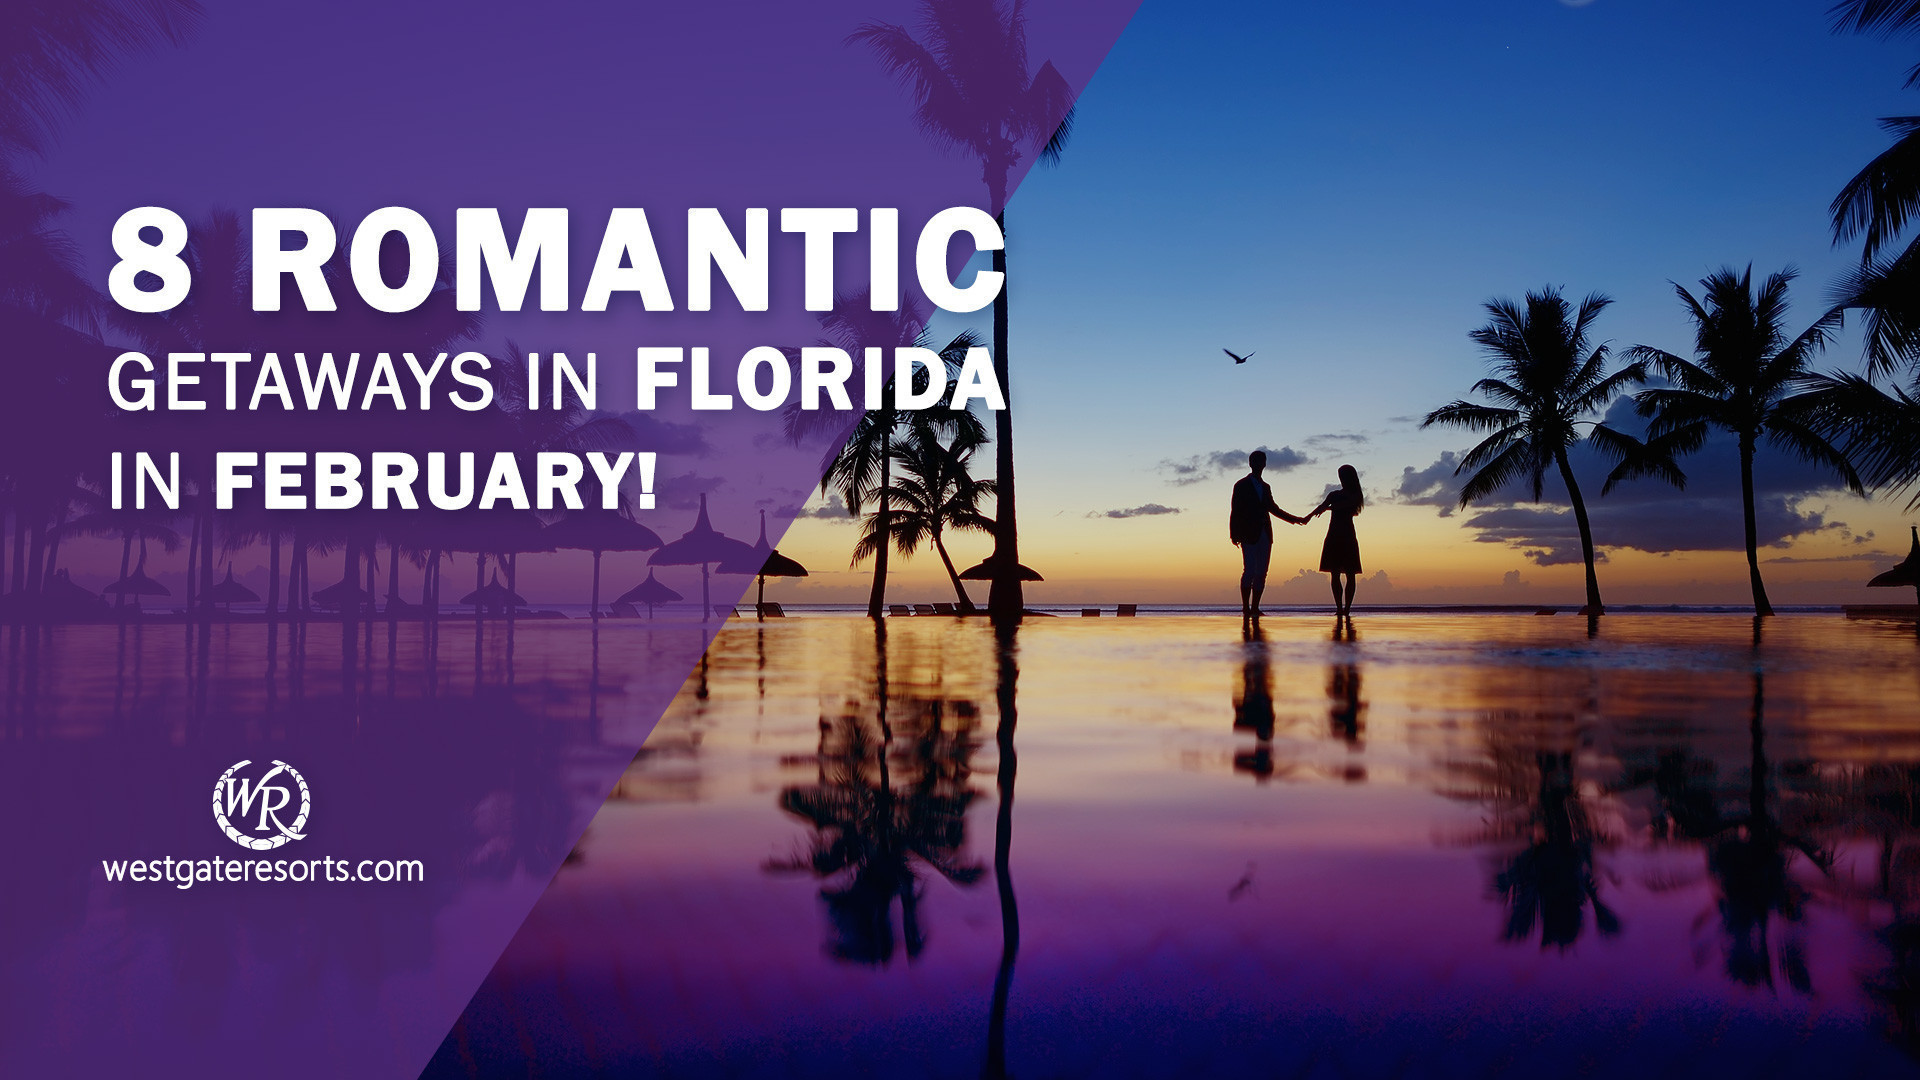 8 Romantic Getaways in Florida in February! | Florida Getaways & Day Trips | Westgate Resorts